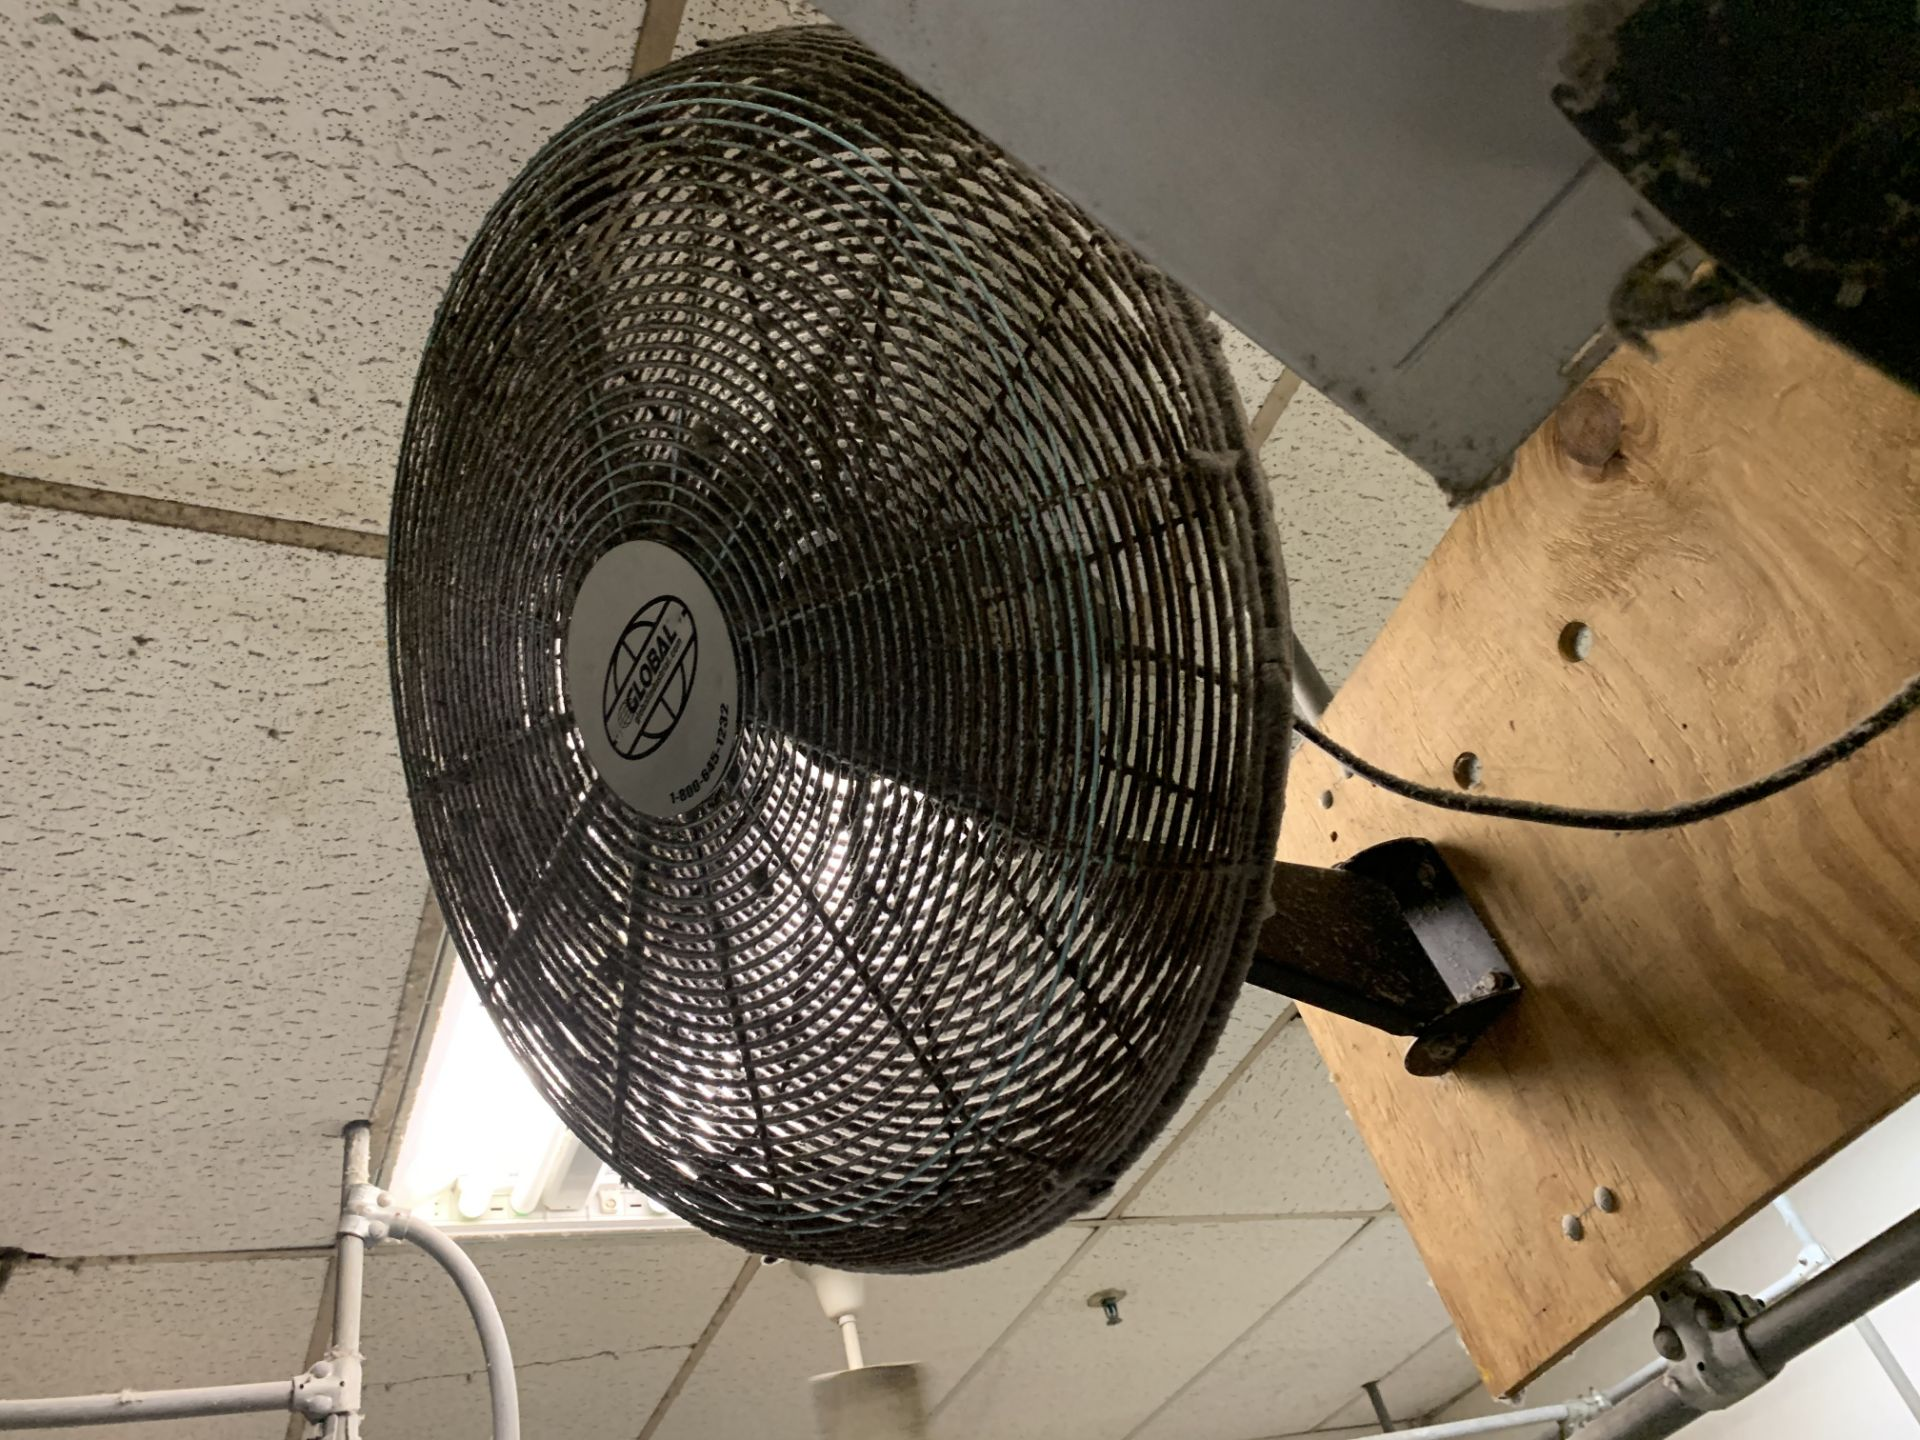 LOLLY COLUMN FANS - Image 2 of 3